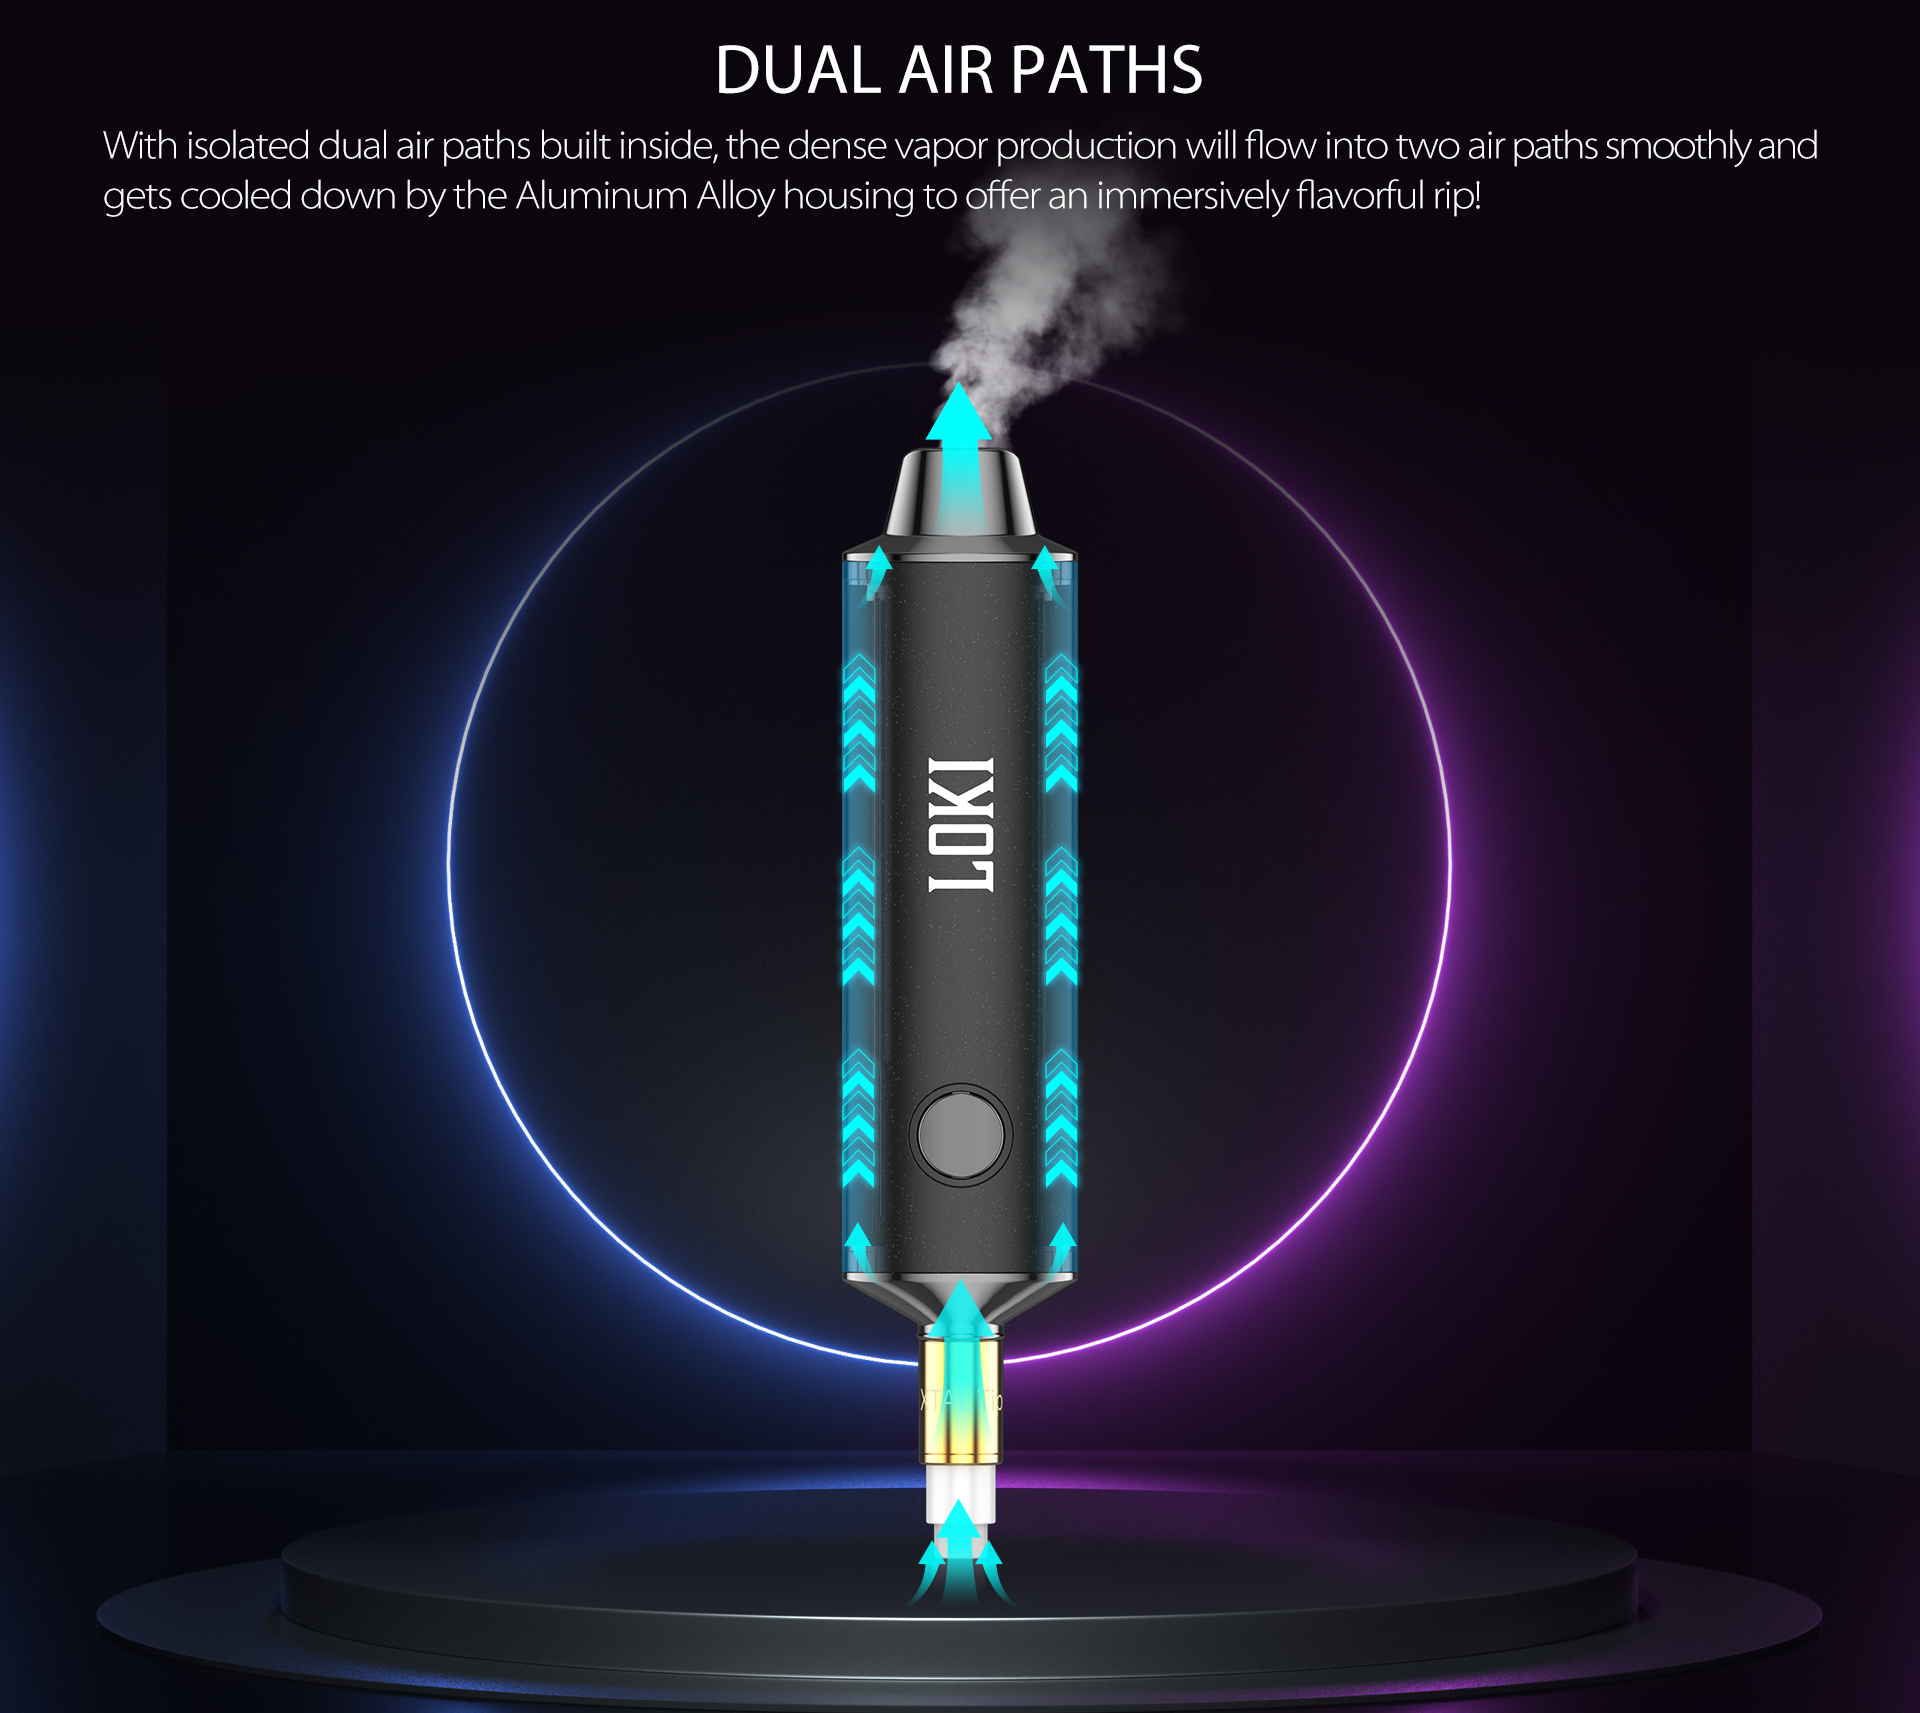 Yocan Loki Portable Vaporizer Pen design with isolated dual air paths.